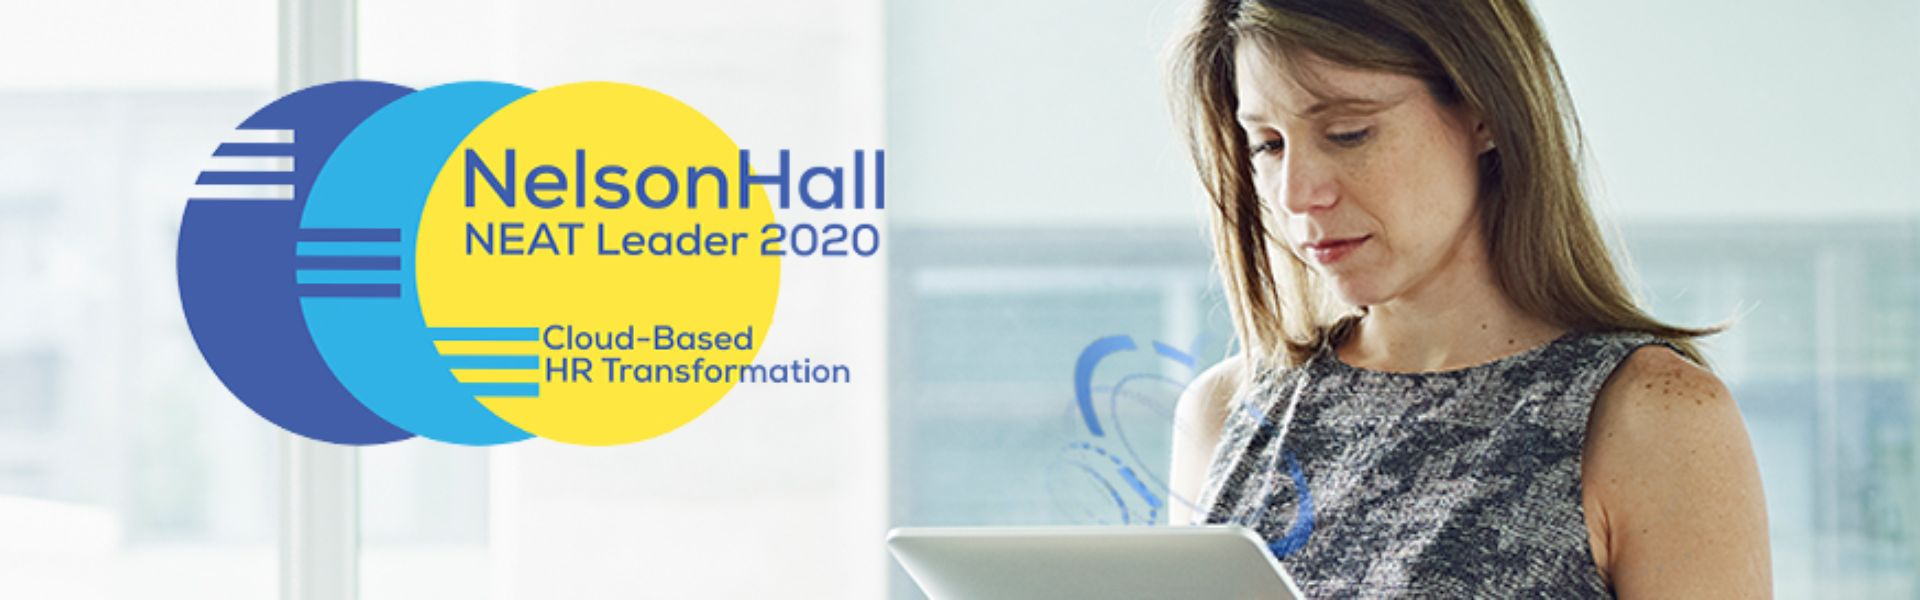 Conduent Named a Cloud-Based HR Transformation Leader by NelsonHall